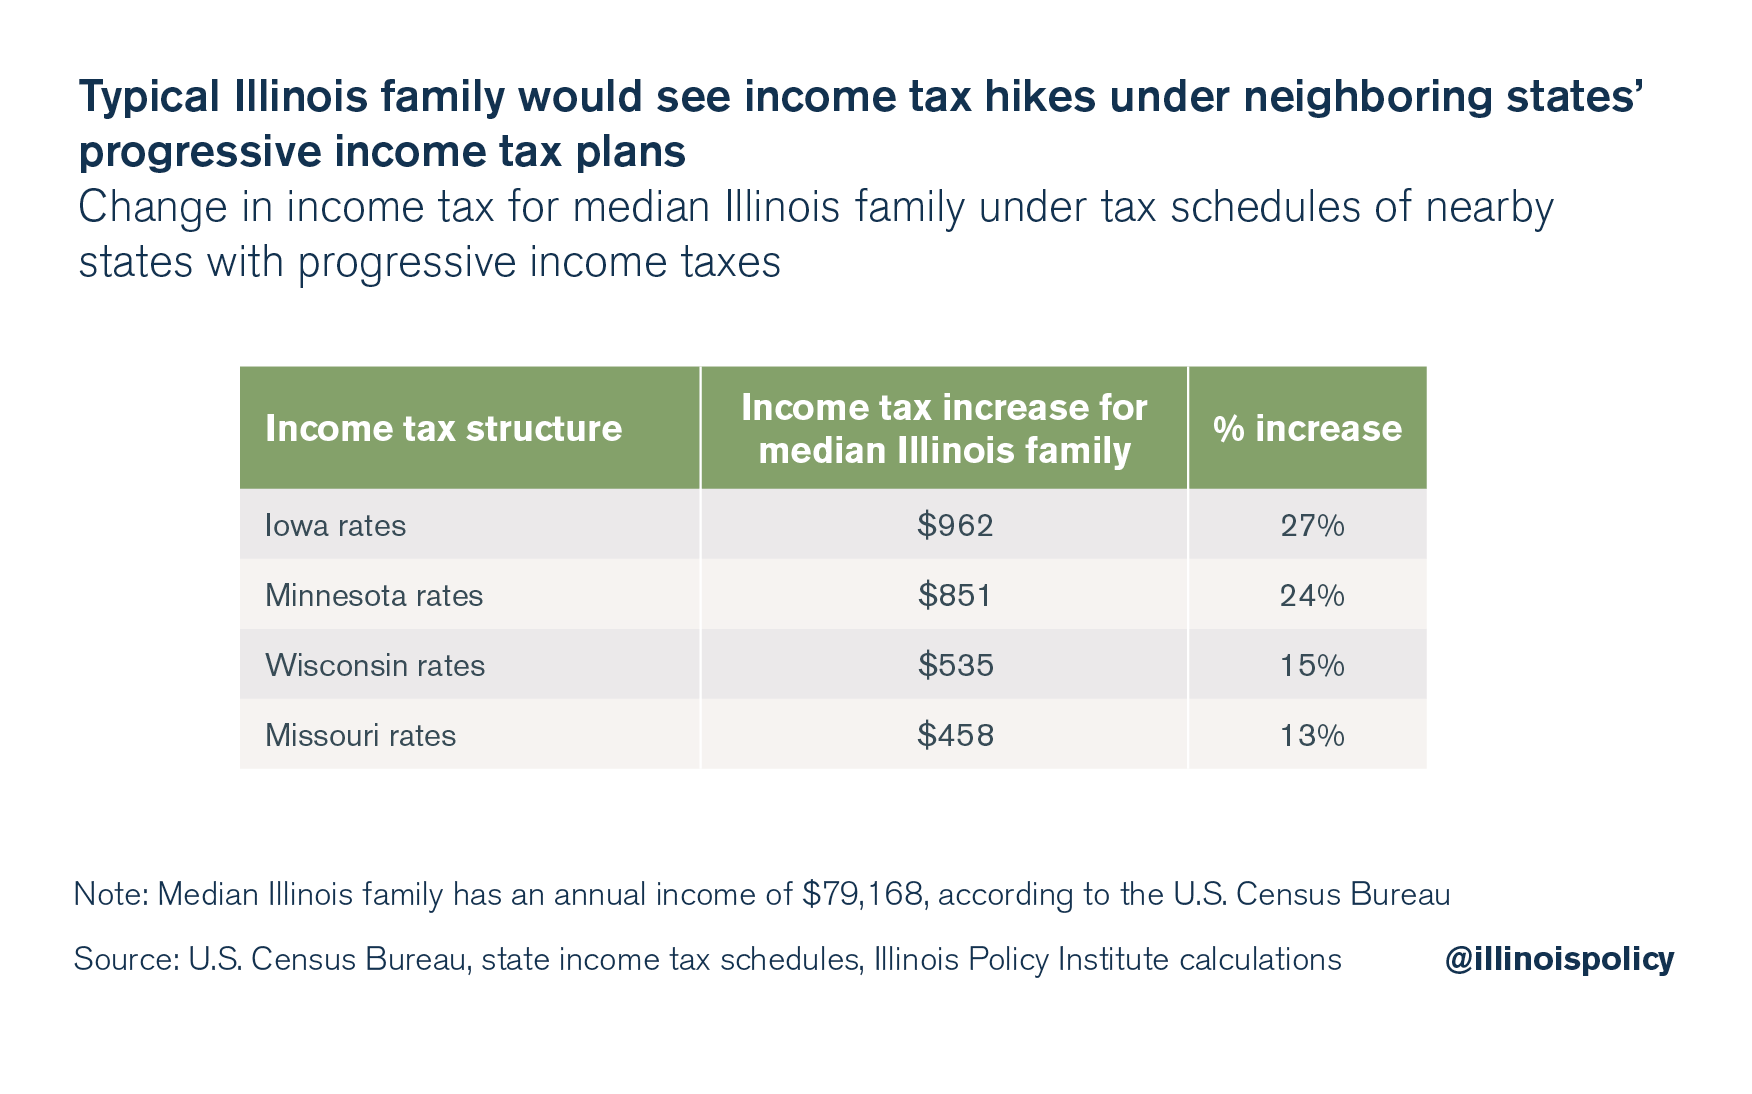 Typical Illinois family would see income tax hikes under neighboring states' progressive income tax plans